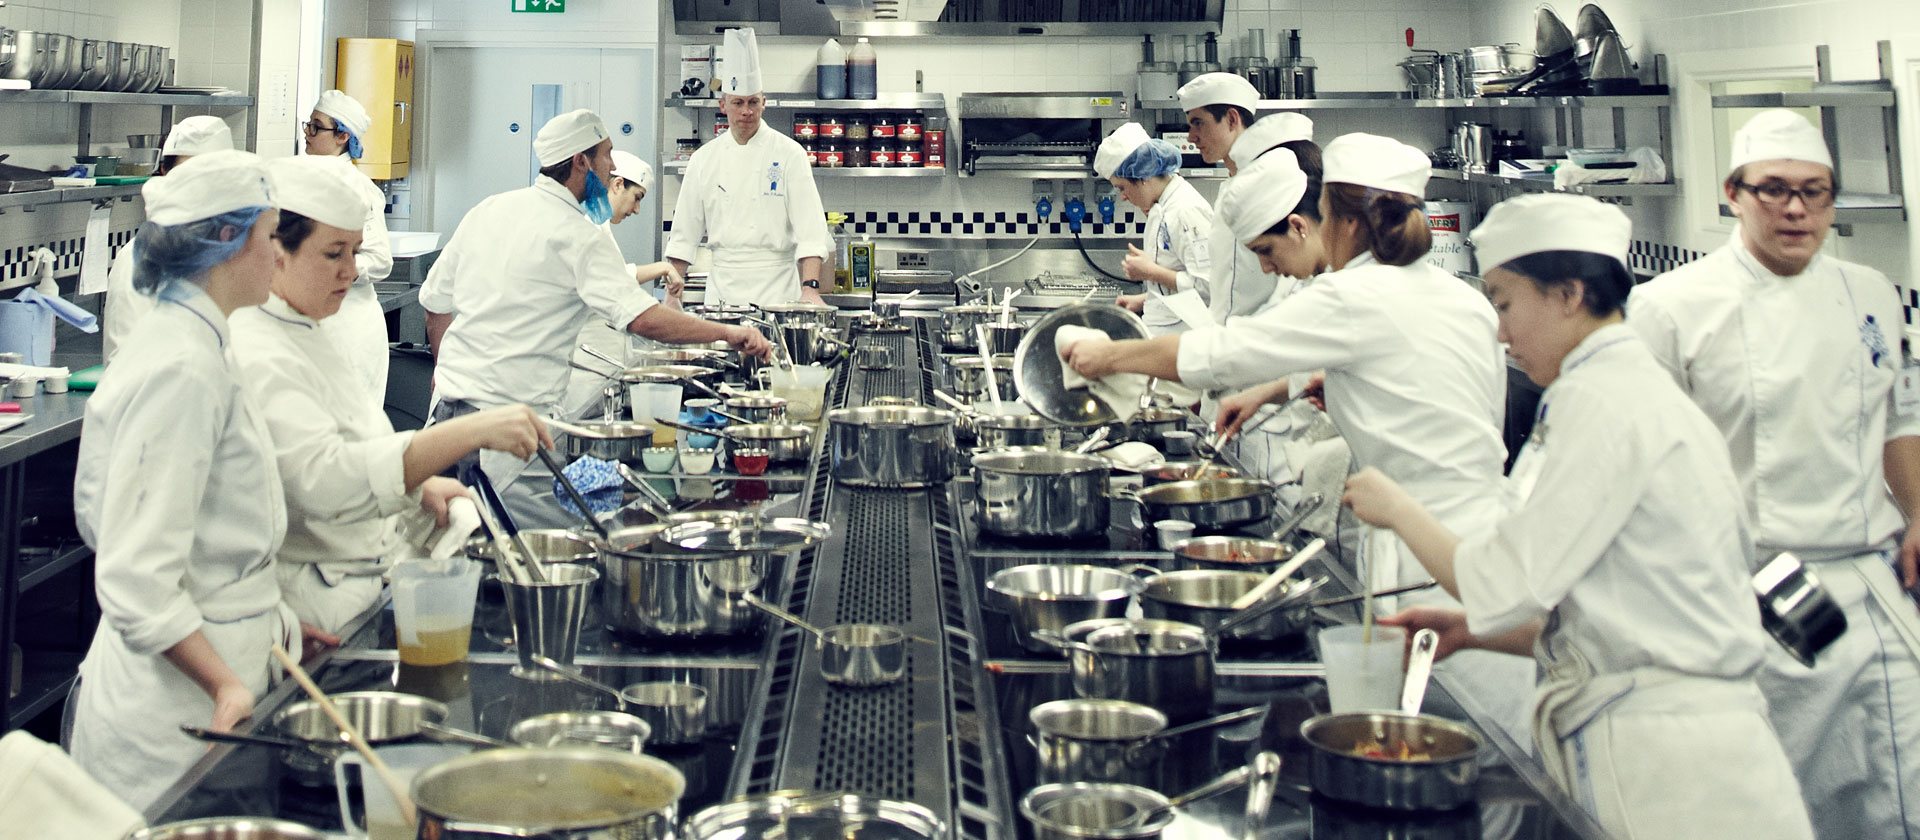 Cuisine Demonstration - Le Cordon Bleu London Open House